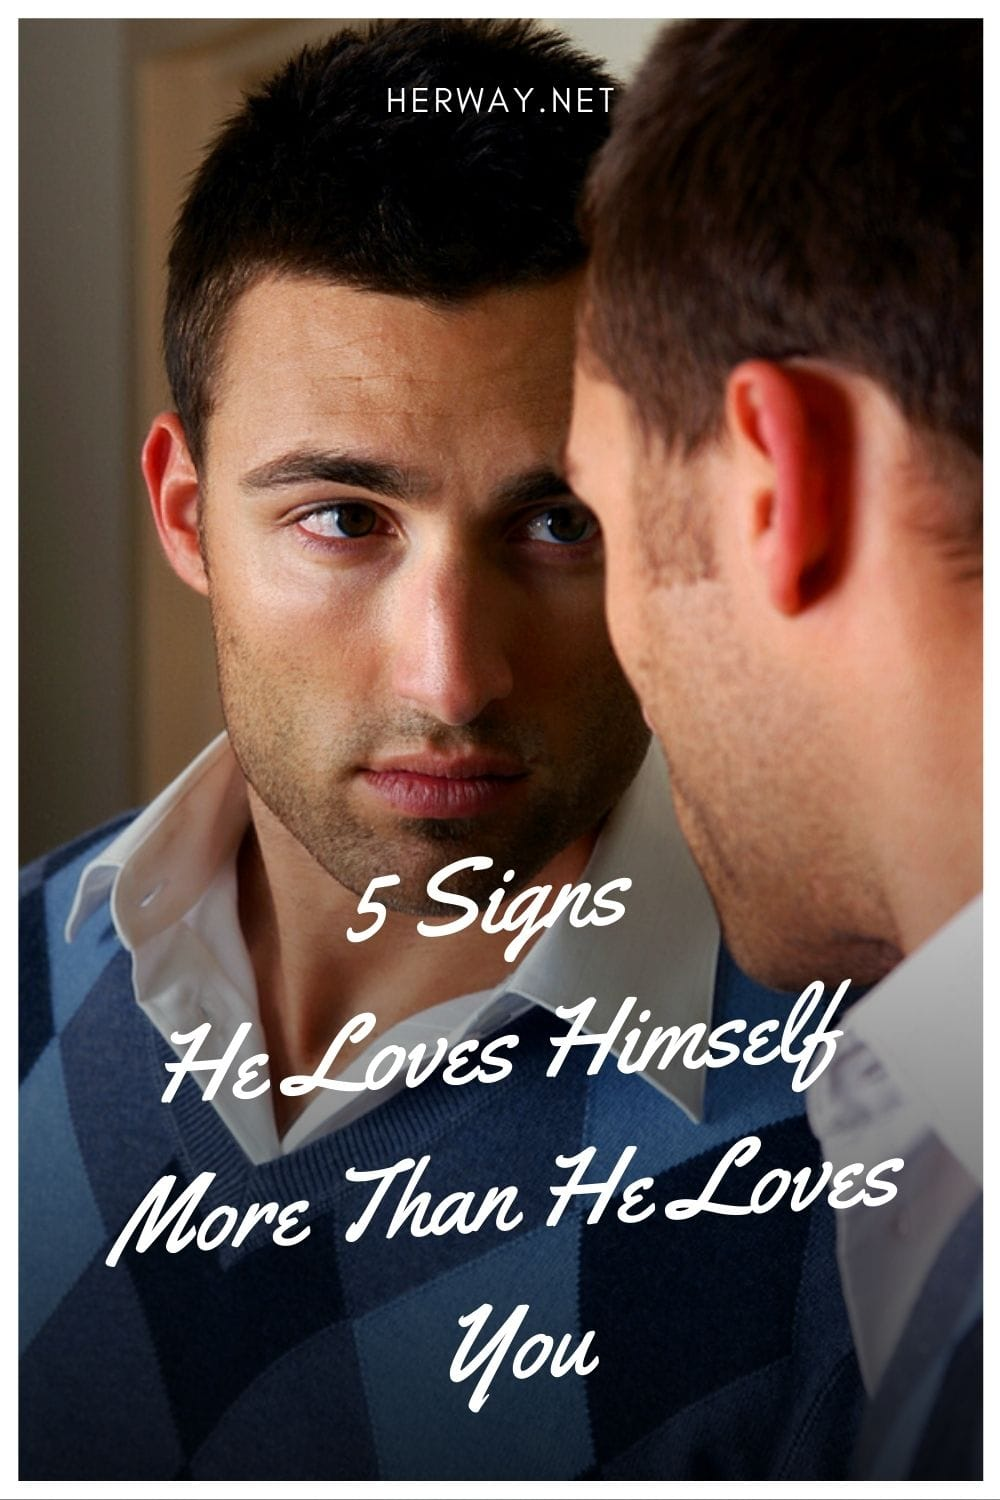 5 Signs He Loves Himself More Than He Loves You